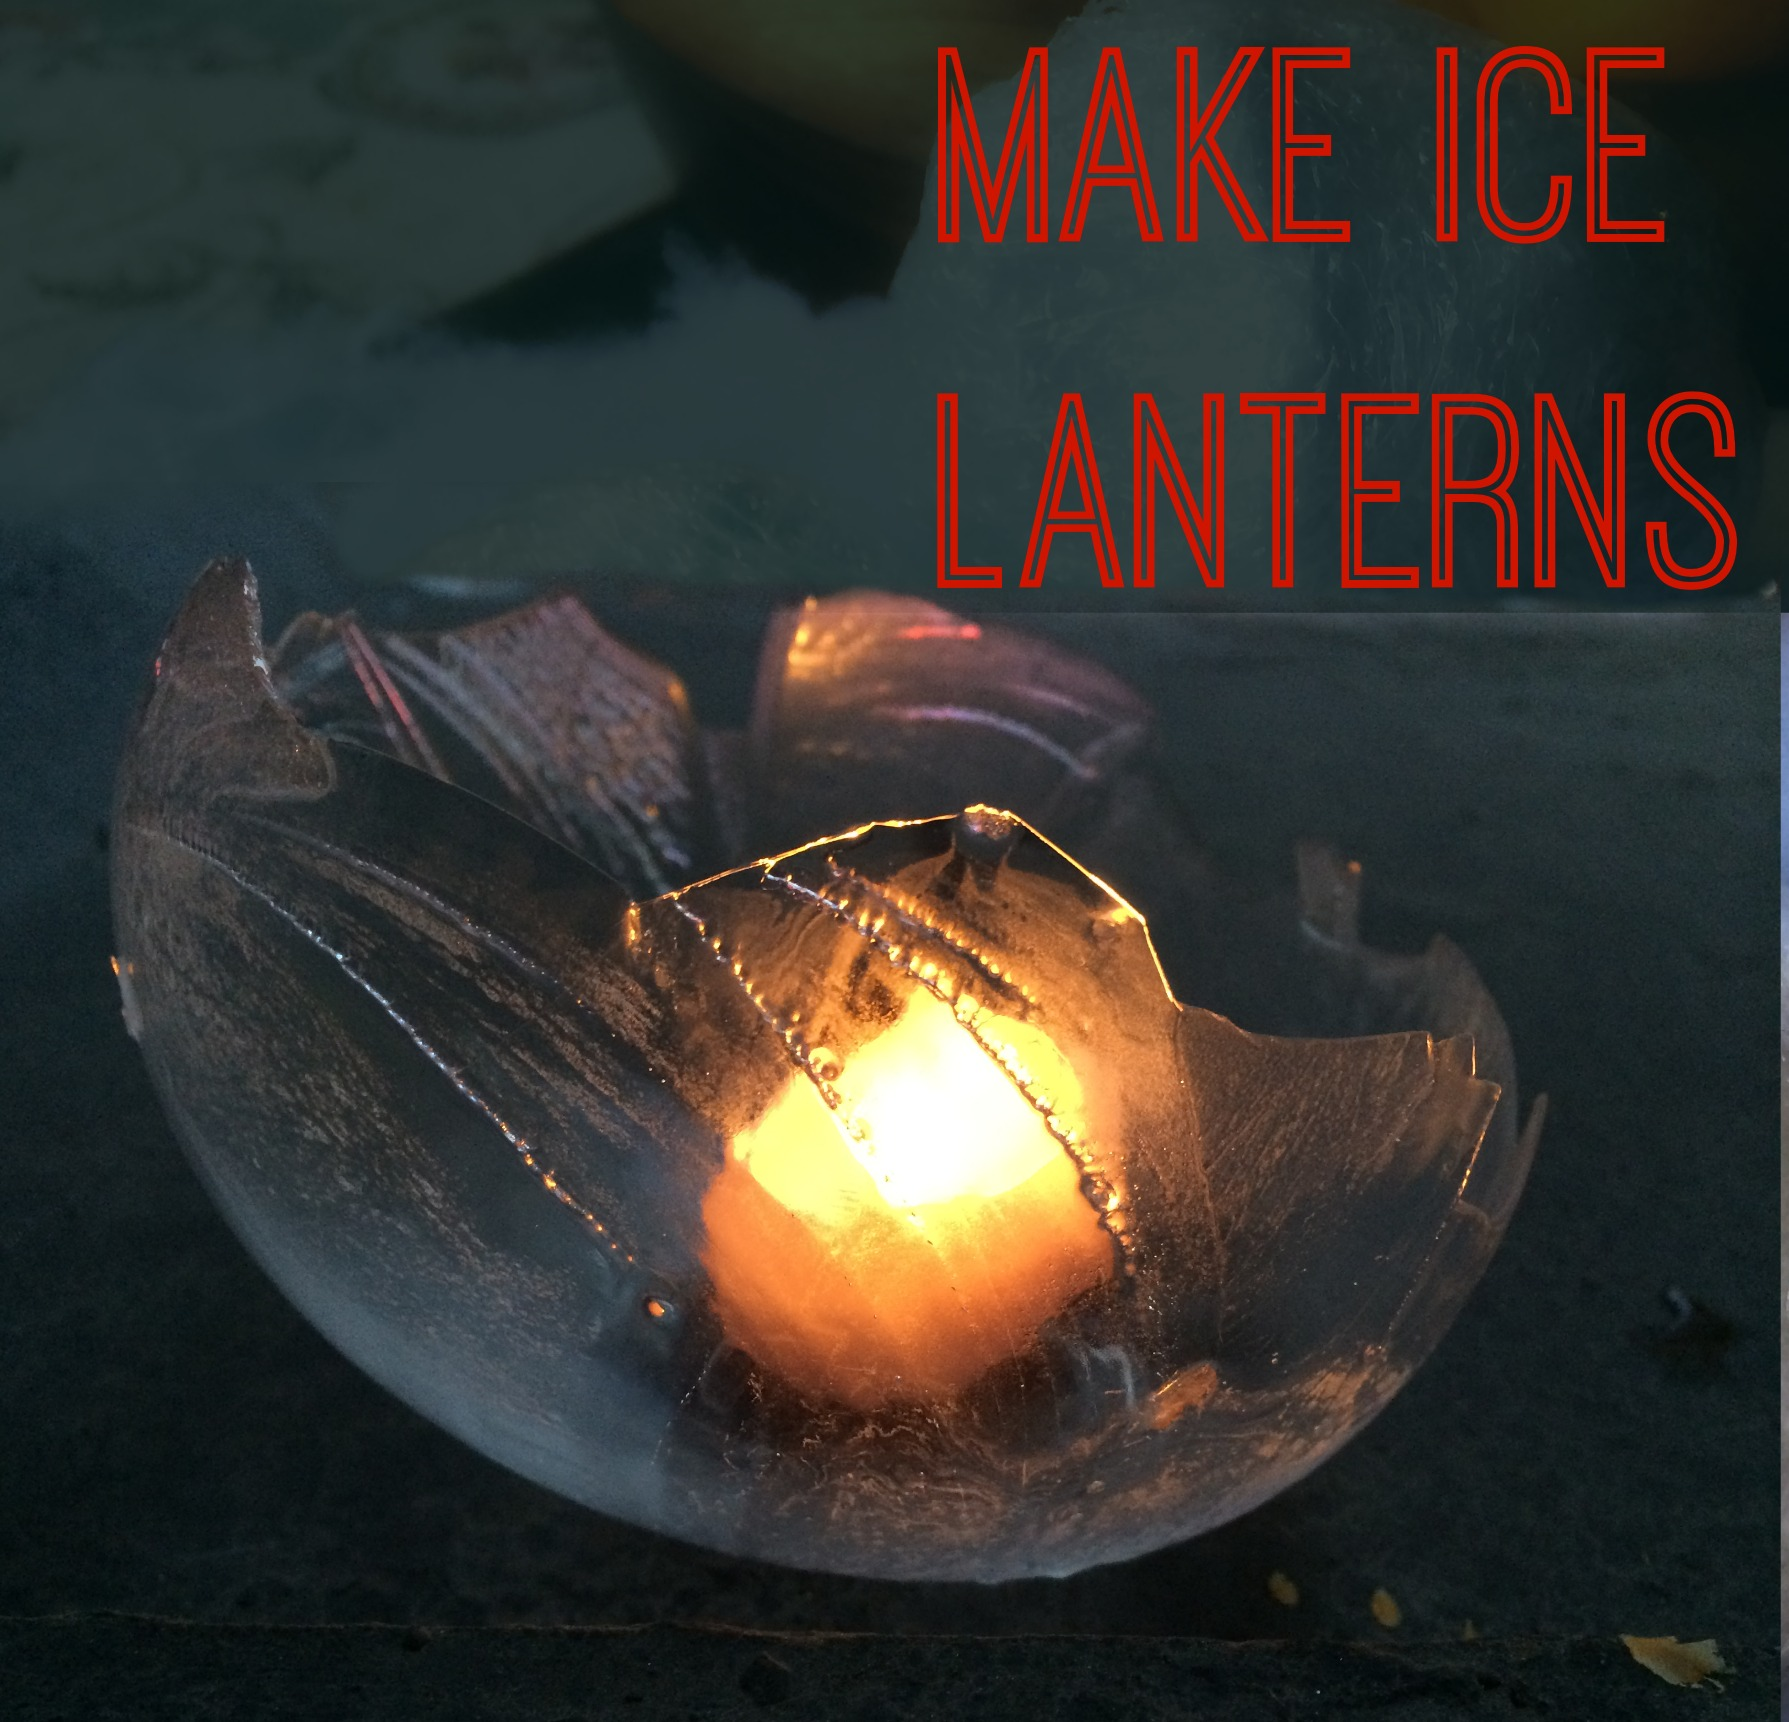 Things To Do In Westchester Today >> WeeWork Kids Craft: Make Ice Lanterns | Mommy Poppins ...